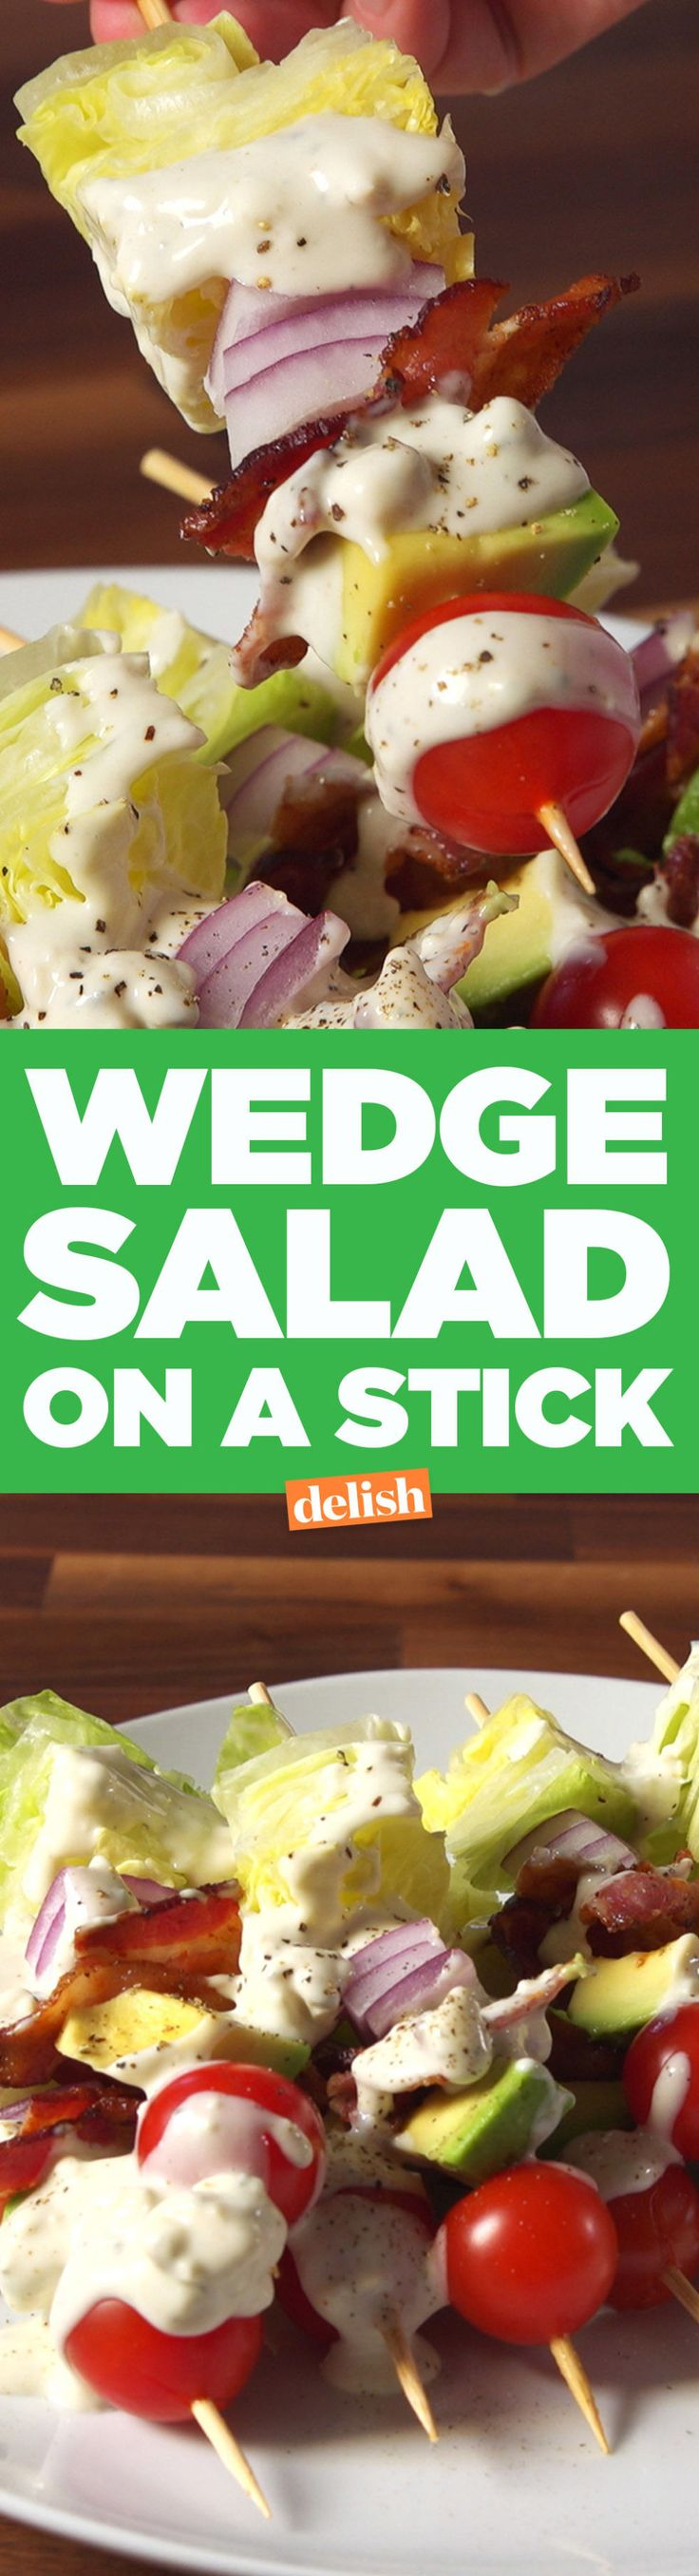 Wedge Salad On A Stick: Can make vegan and/or with healthier dressing, too!